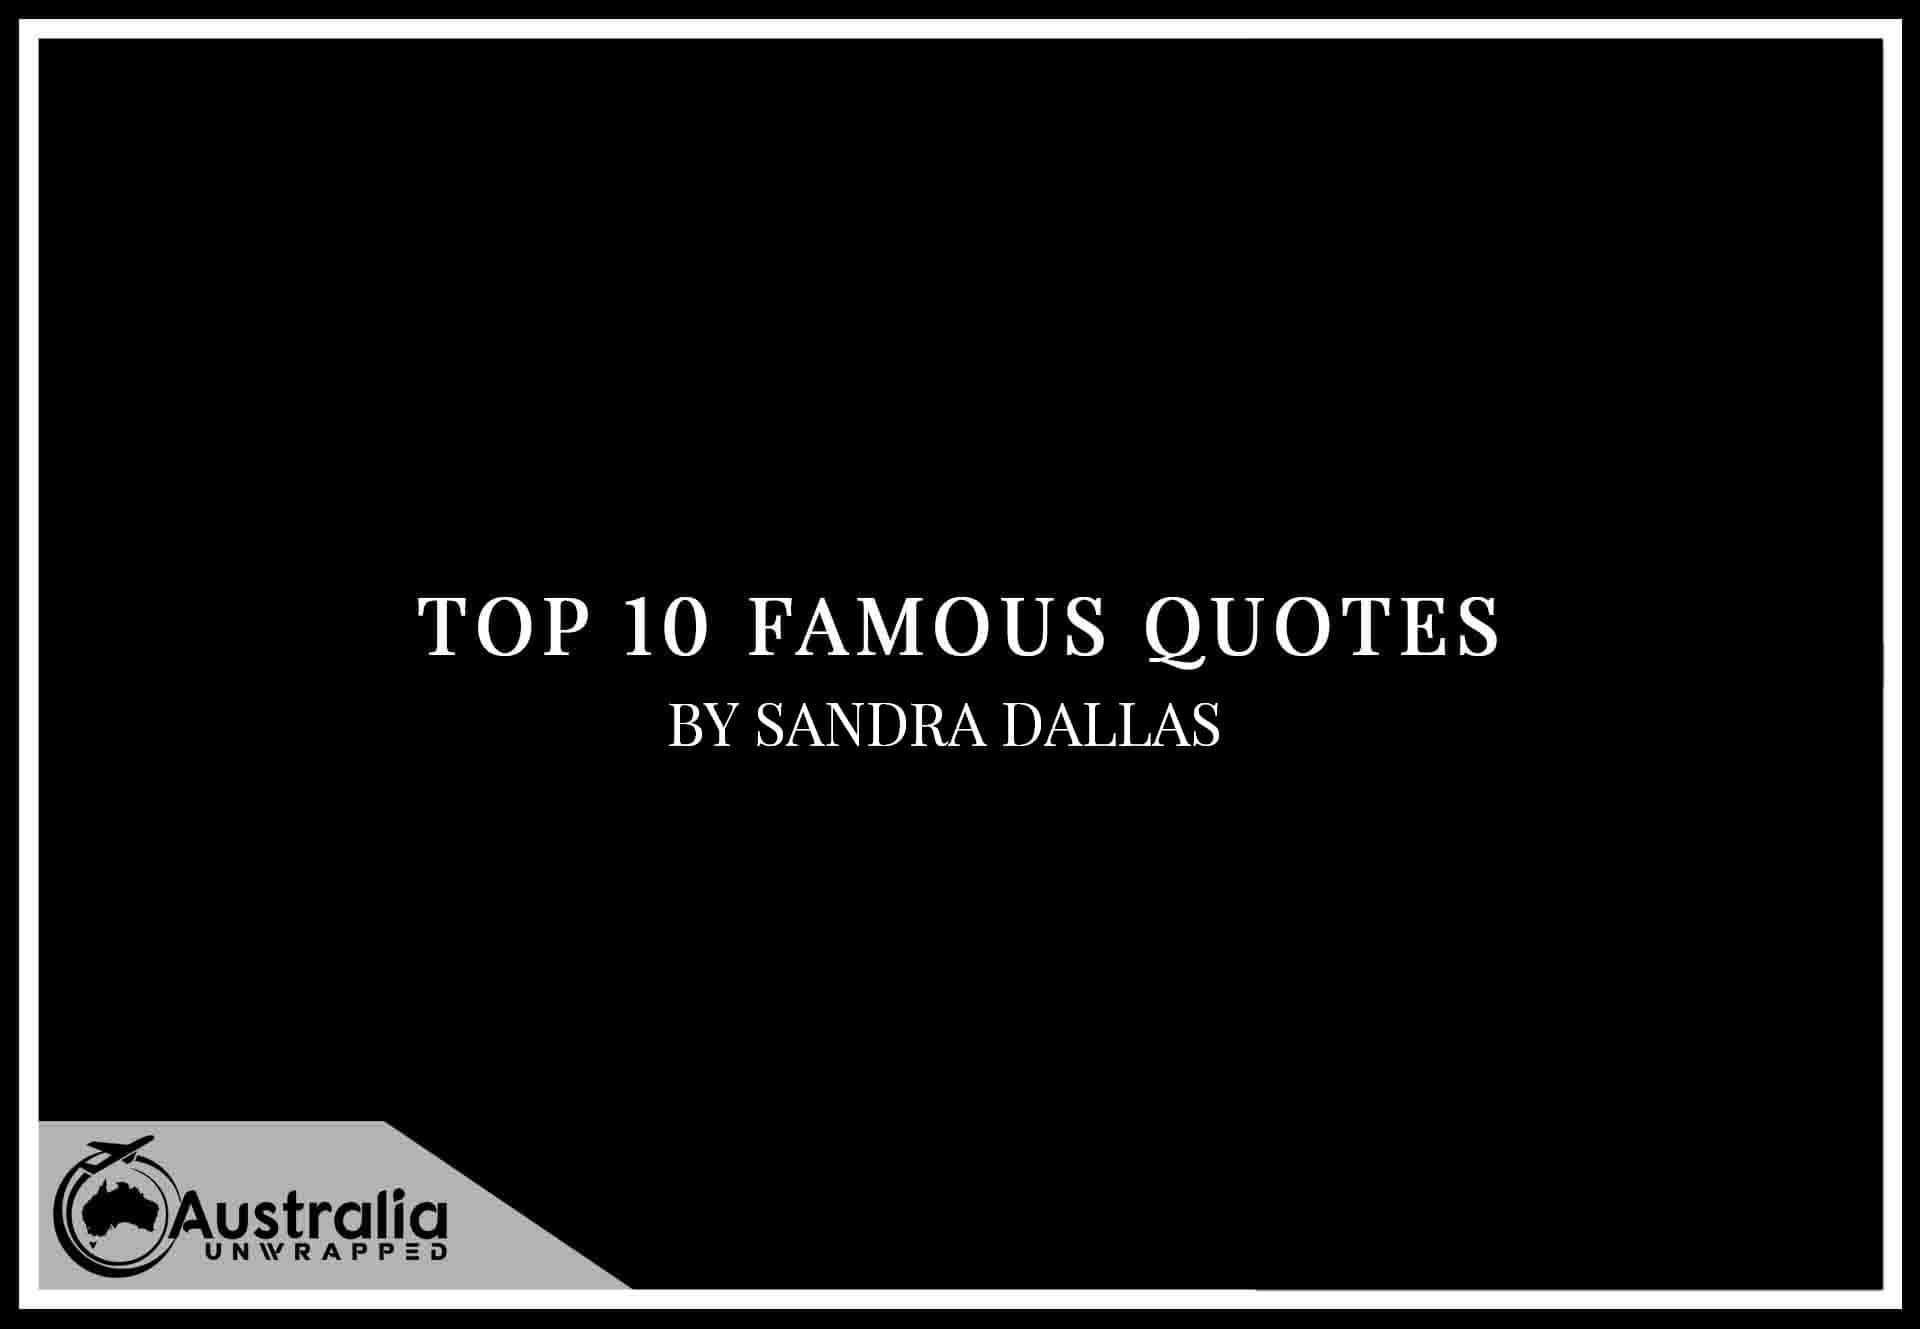 Top 10 Famous Quotes by Author Sandra Dallas